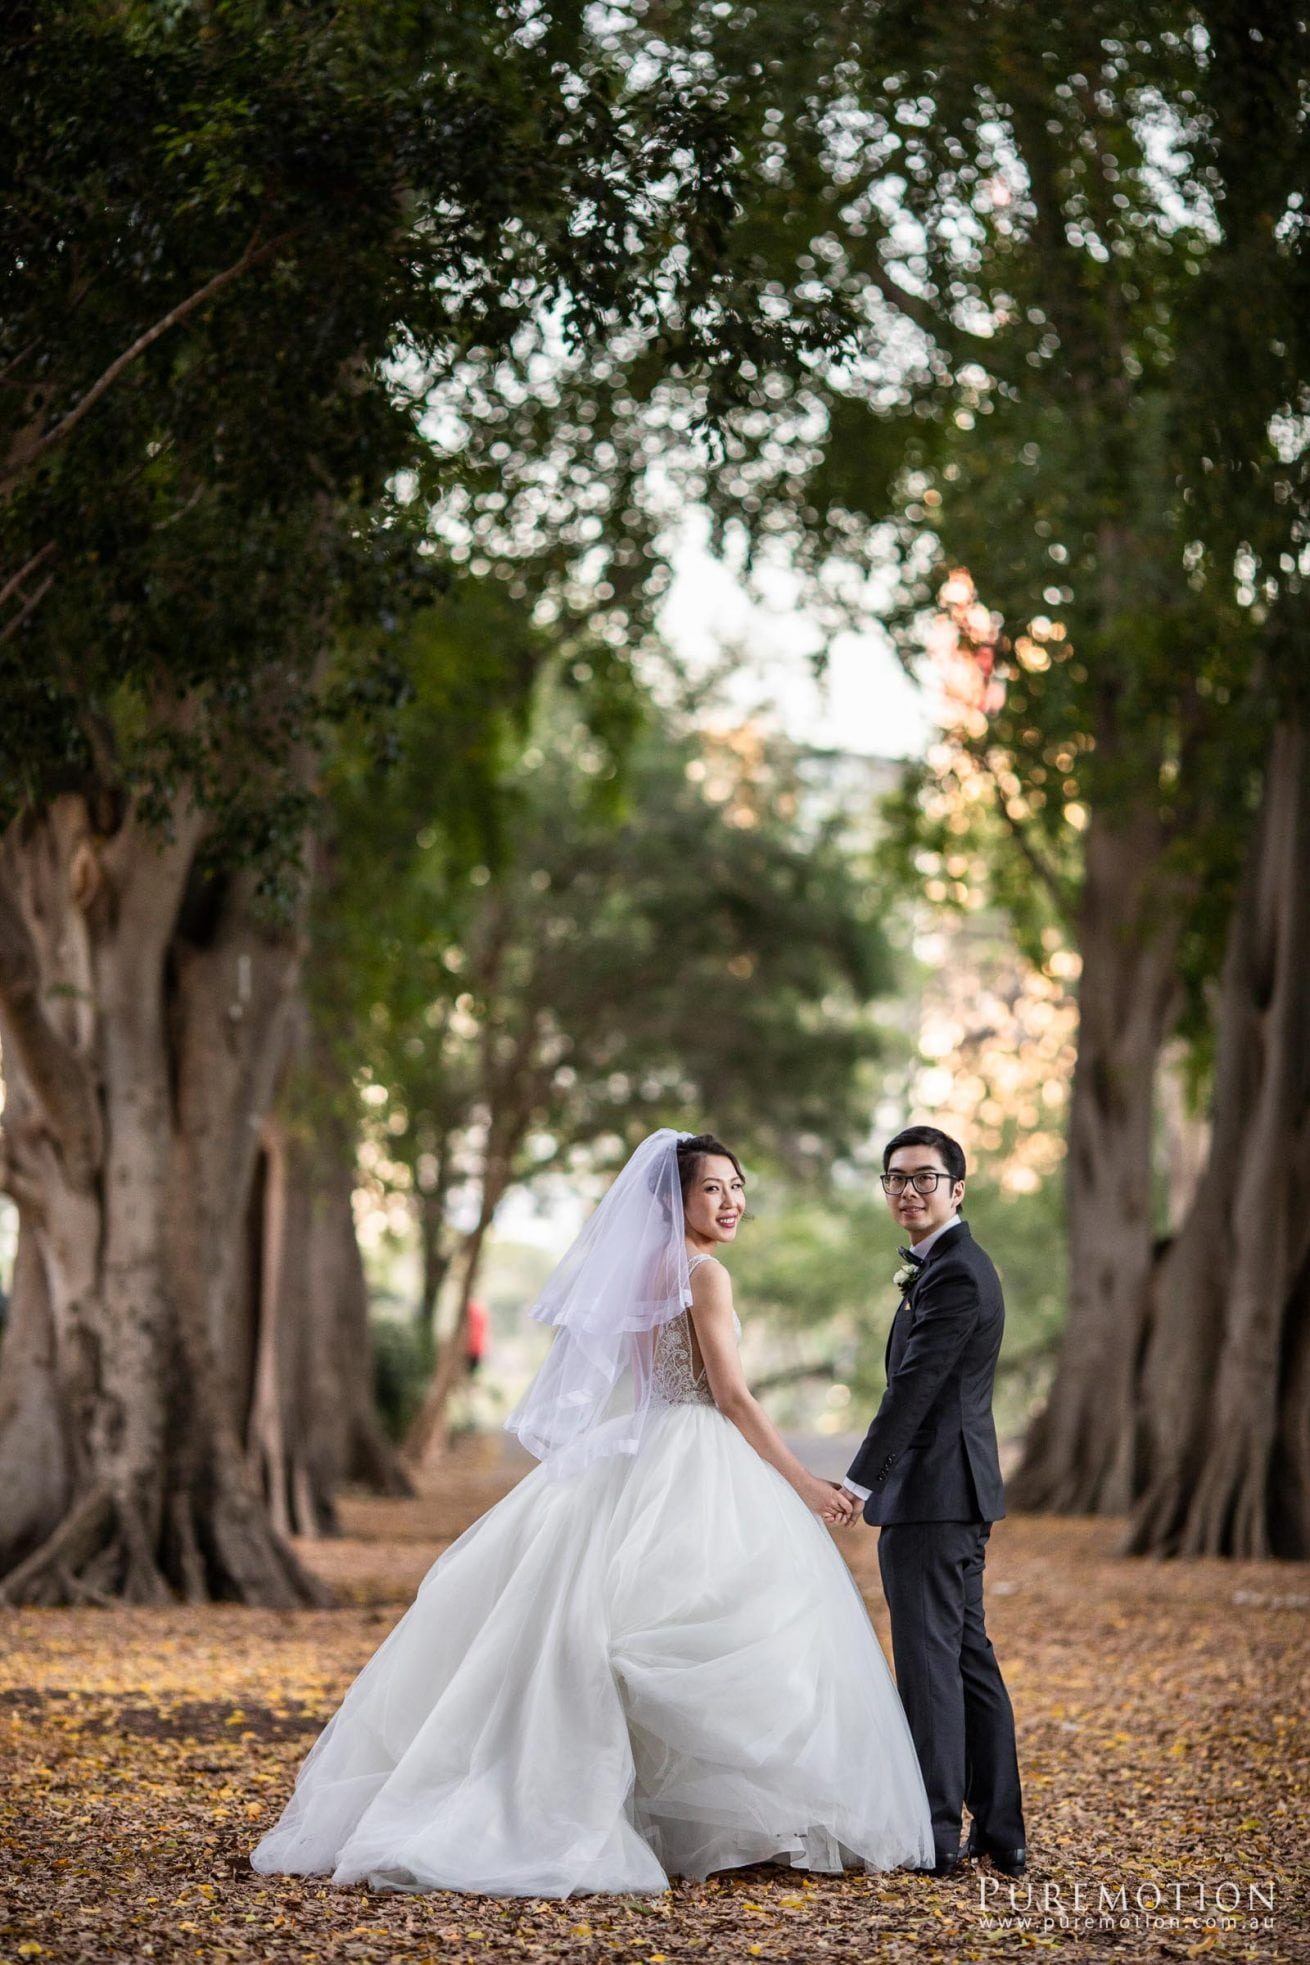 180818 Puremotion Wedding Photography Brisbane Alex Huang MichelleConan Room 360_Site-0088